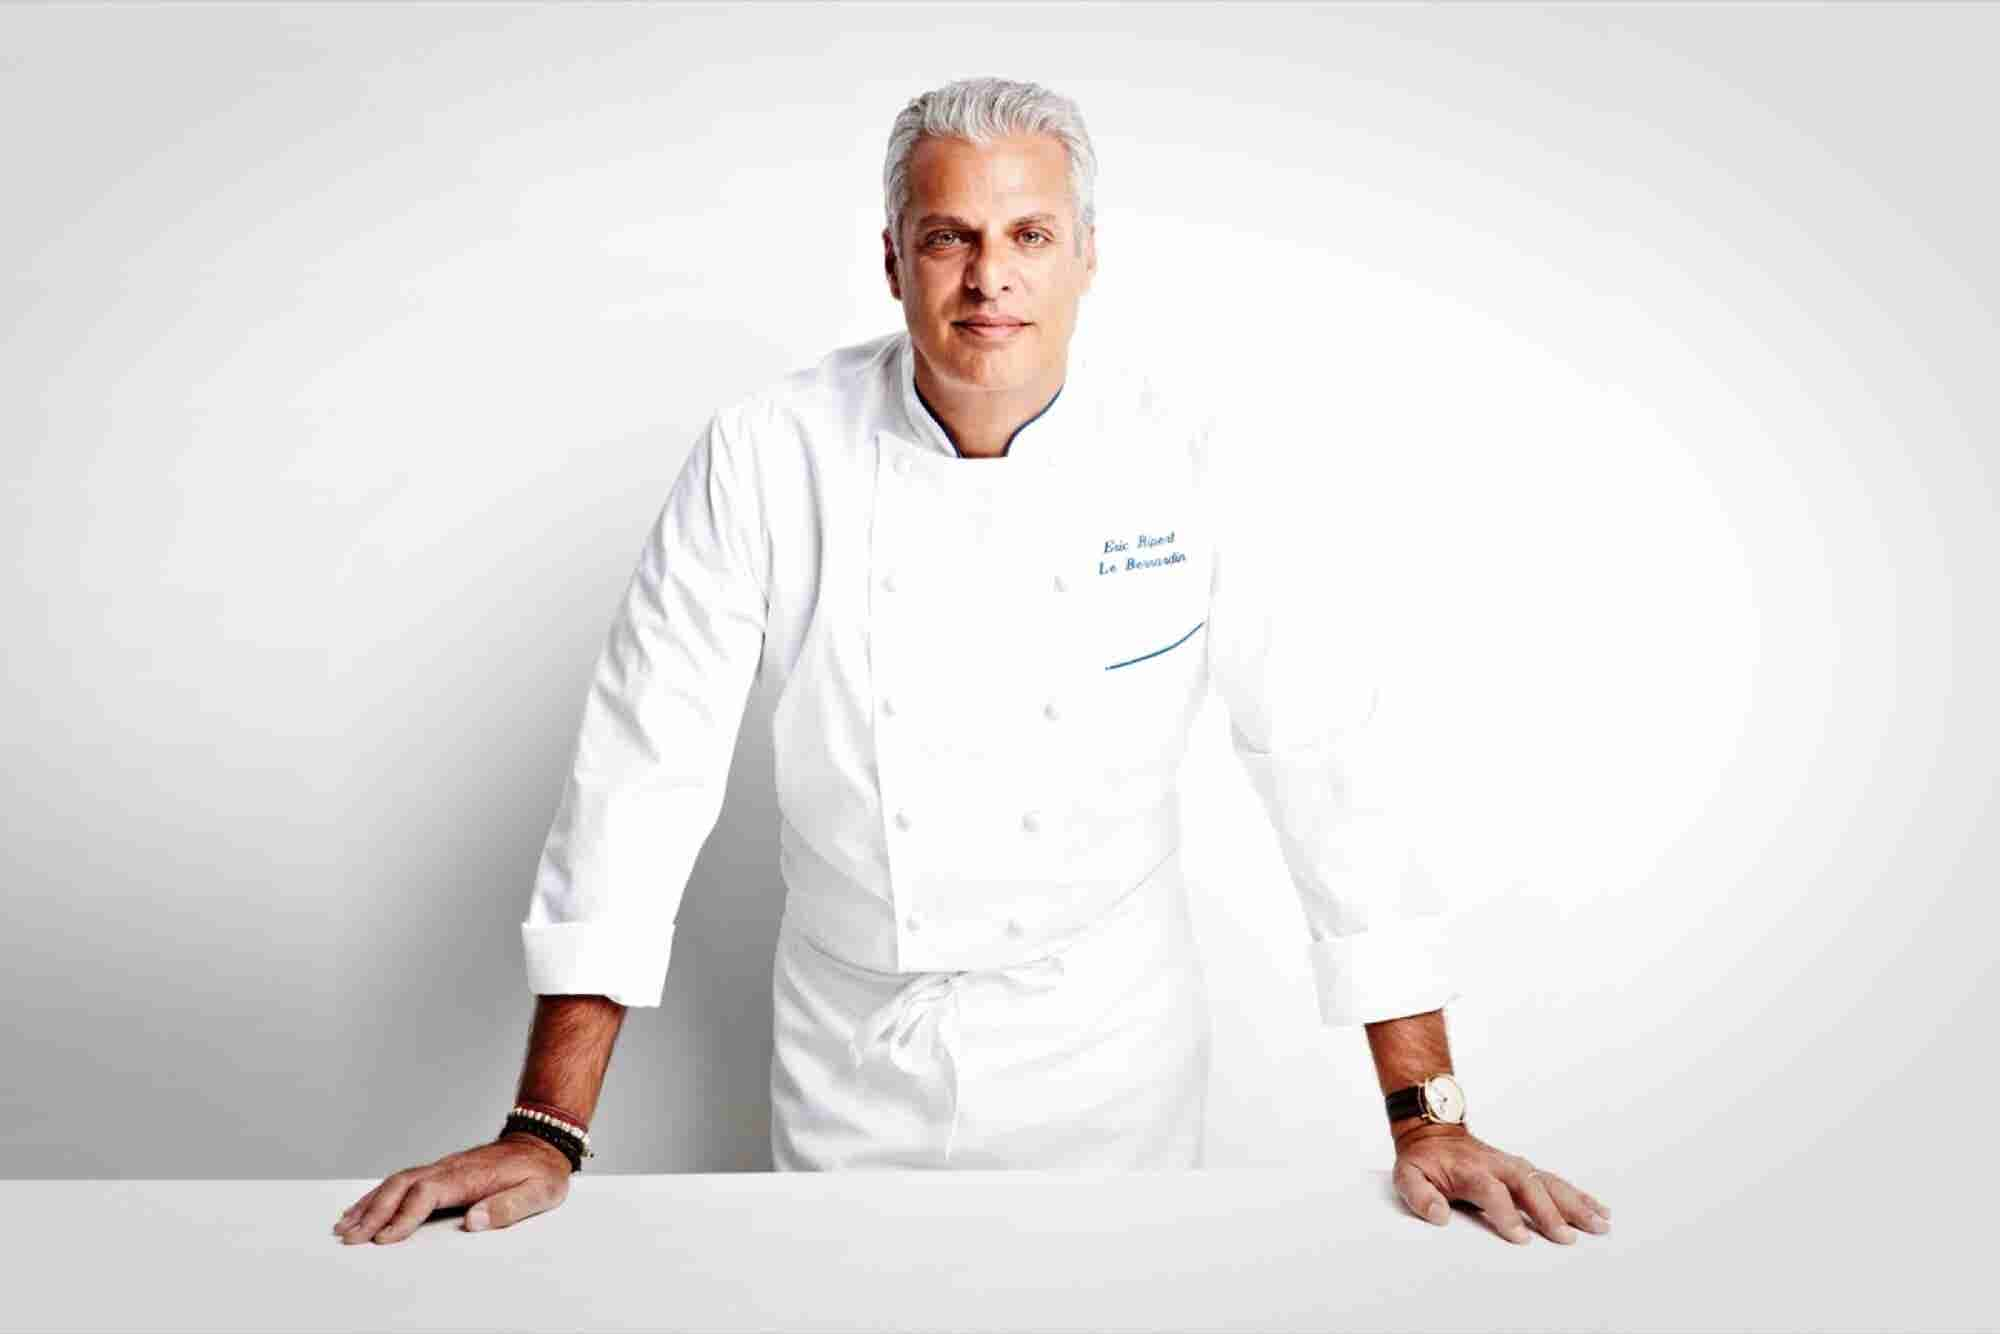 Le Bernardin's Chef Eric Ripert Reveals the Most Important Advice He's Gotten from a Mentor